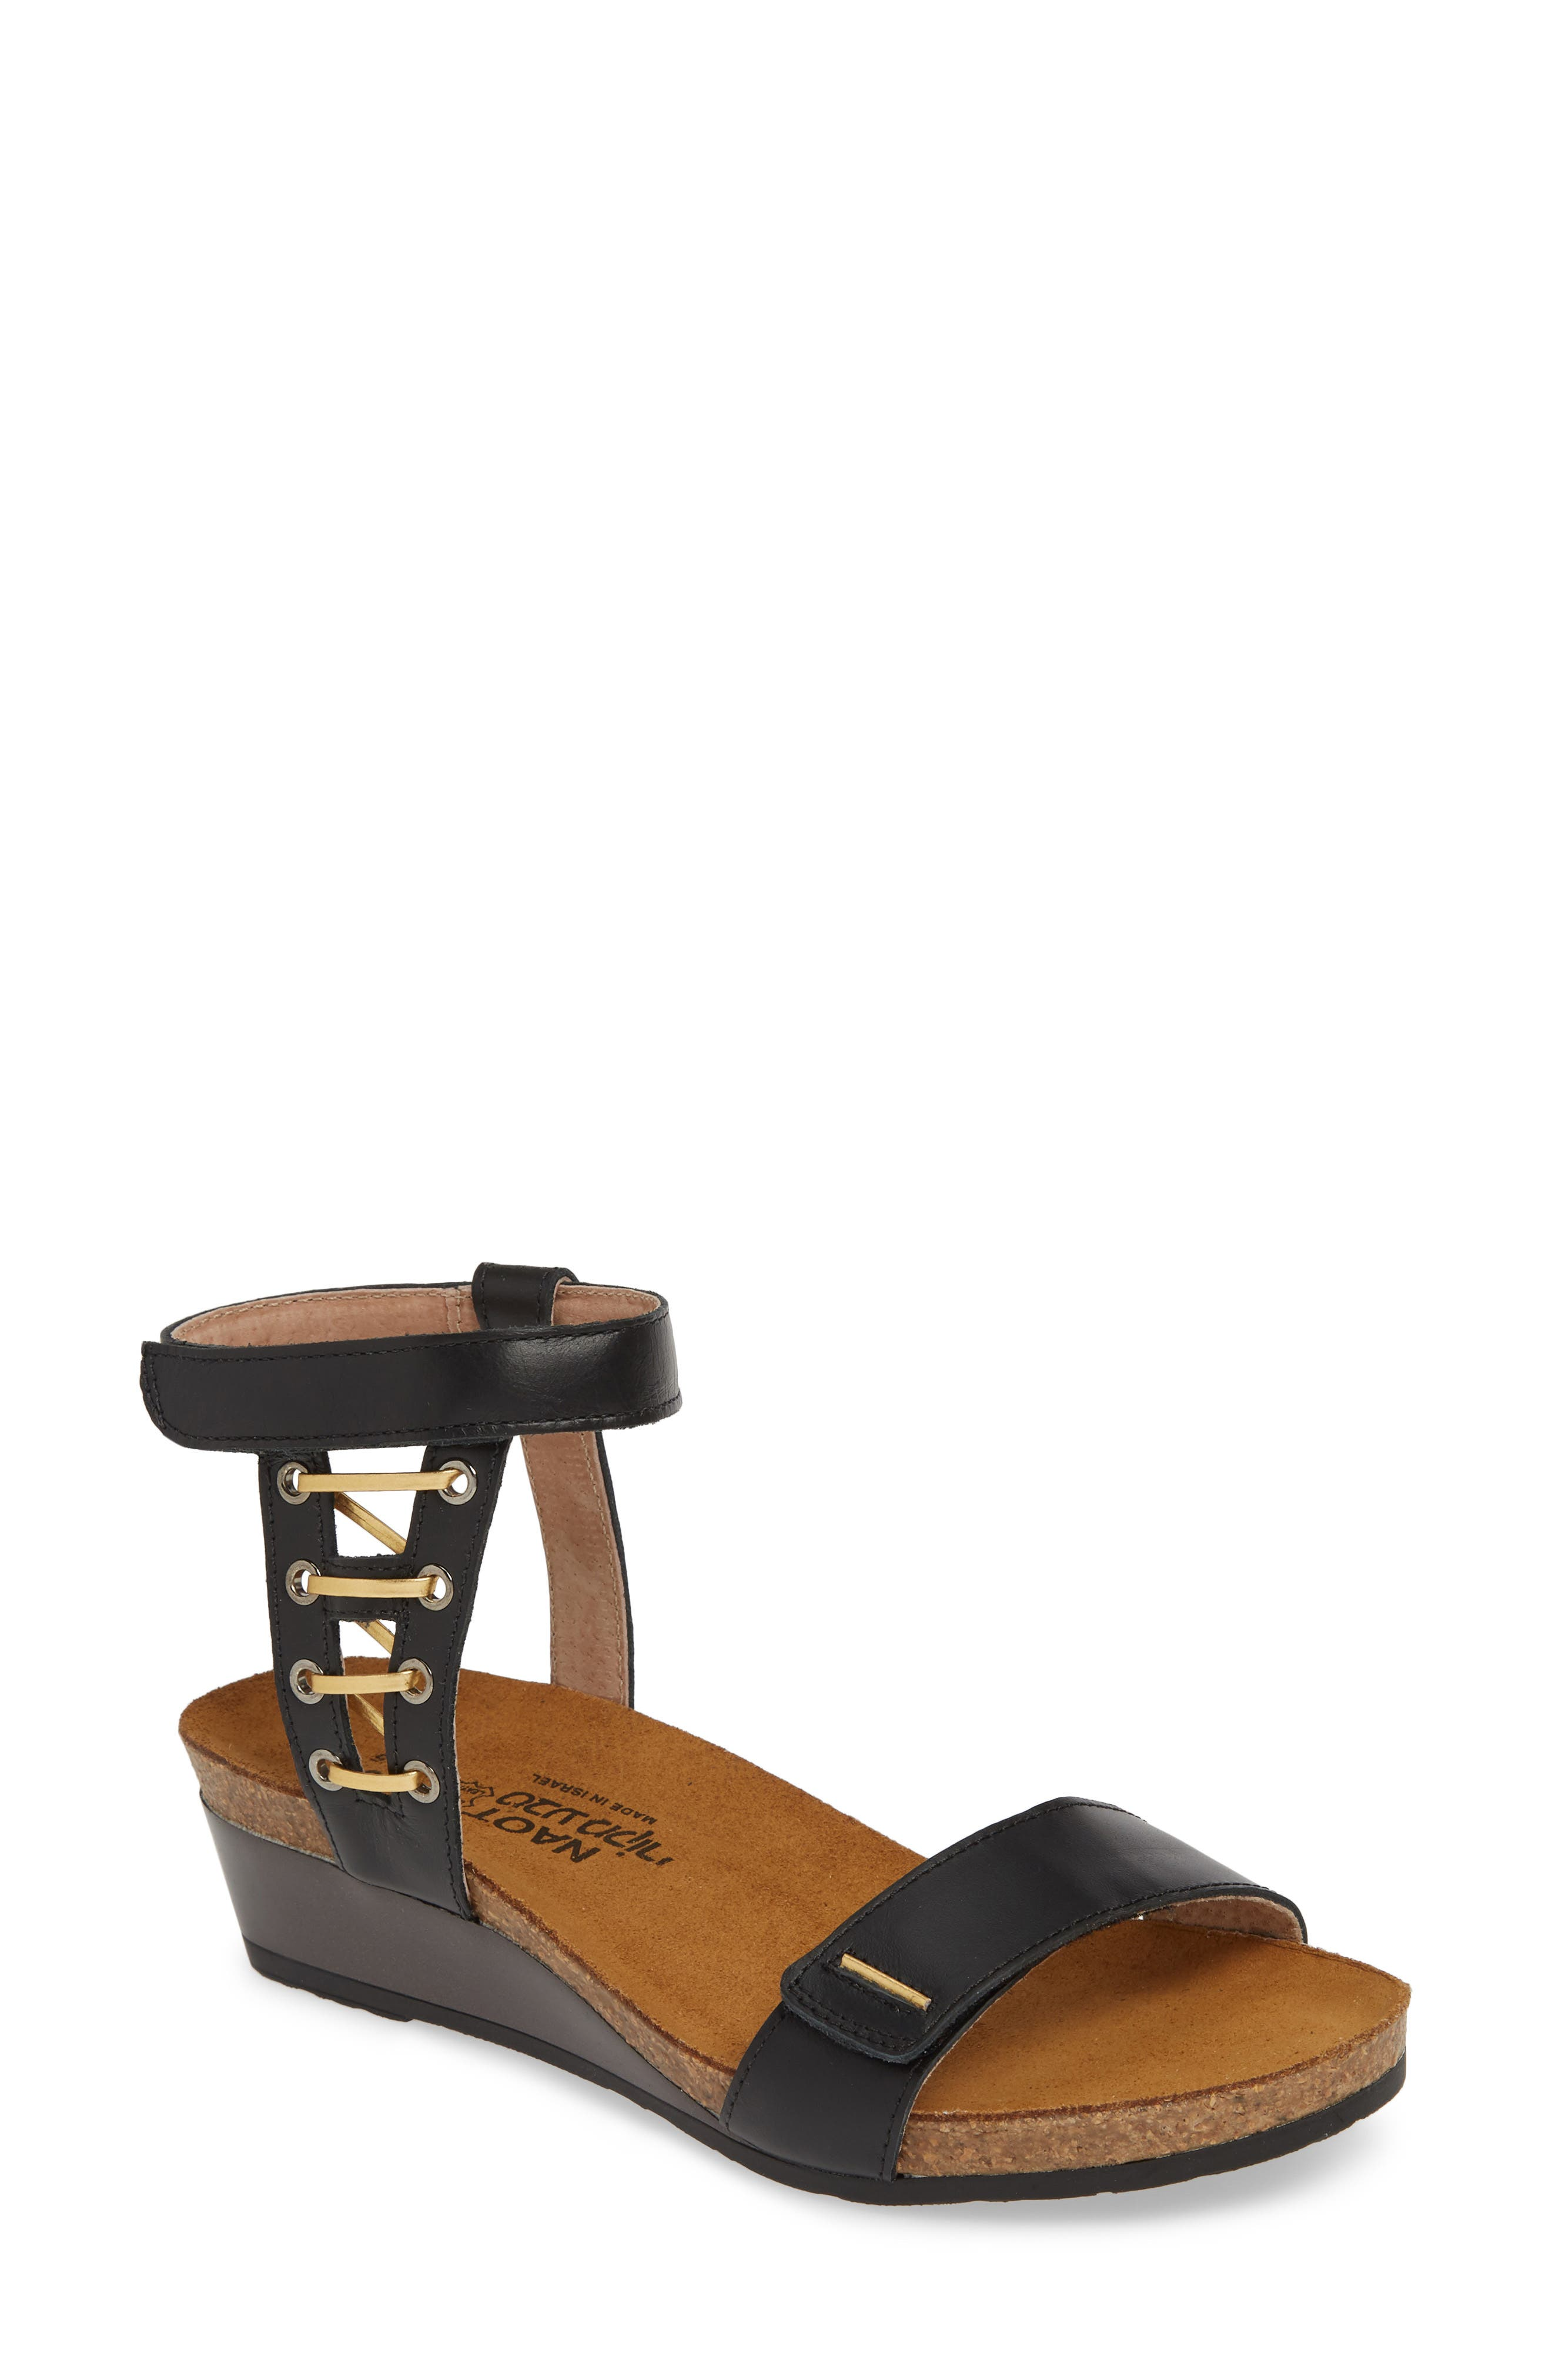 NAOT Wizard Sandal, Main, color, BLACK RAVEN/ GOLD